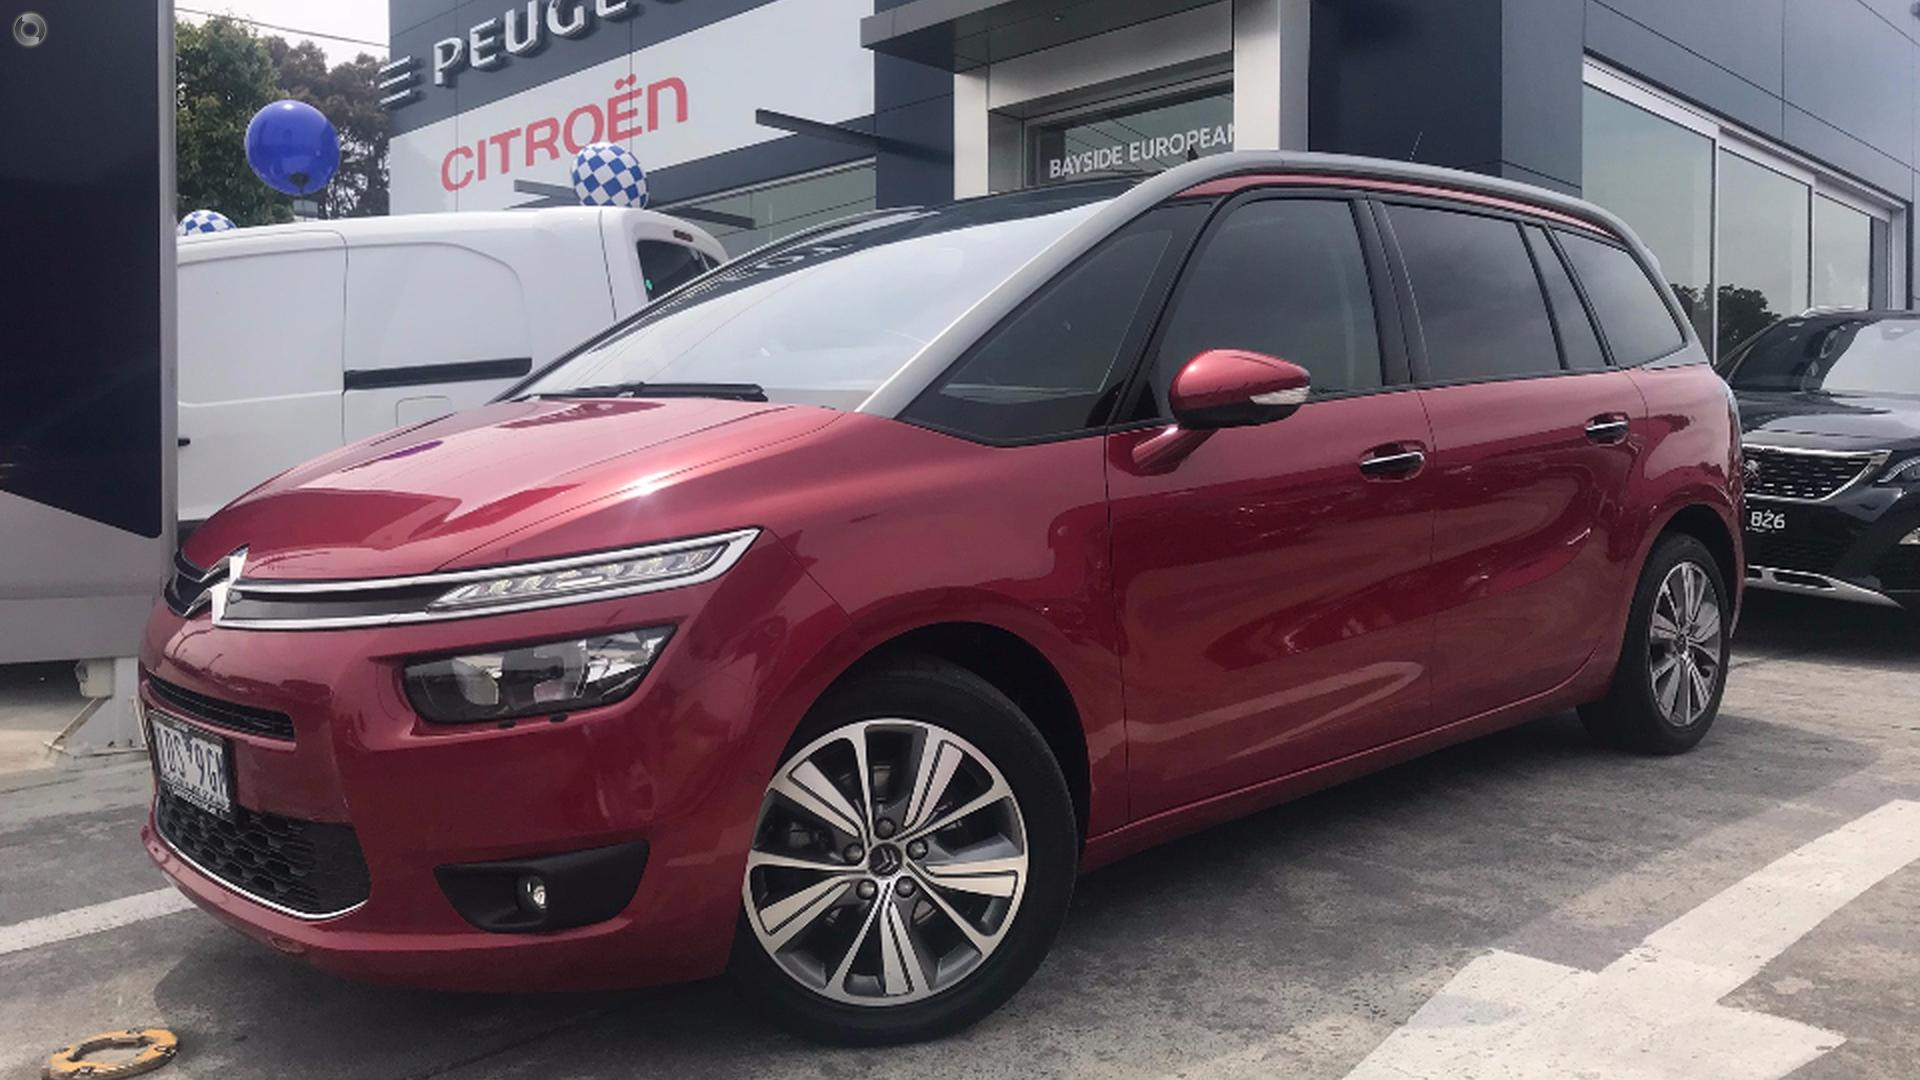 2014 Citroen Grand C4 Picasso Exclusive B7